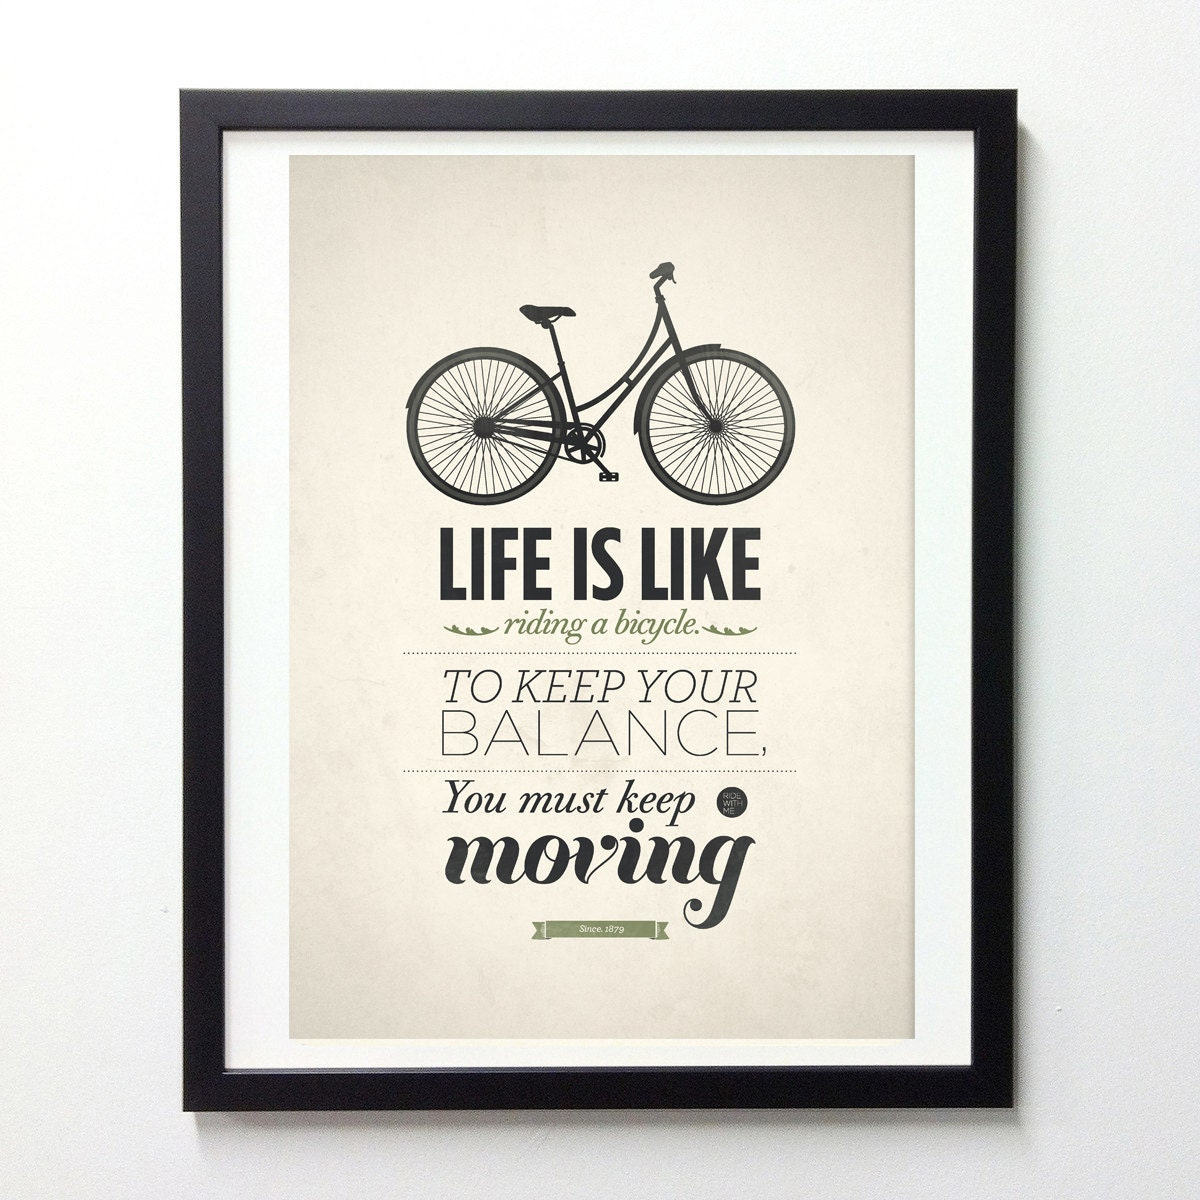 Bike Quotes: Rustic Home Decor Life Is Like Riding A Bicycle By NeueGraphic